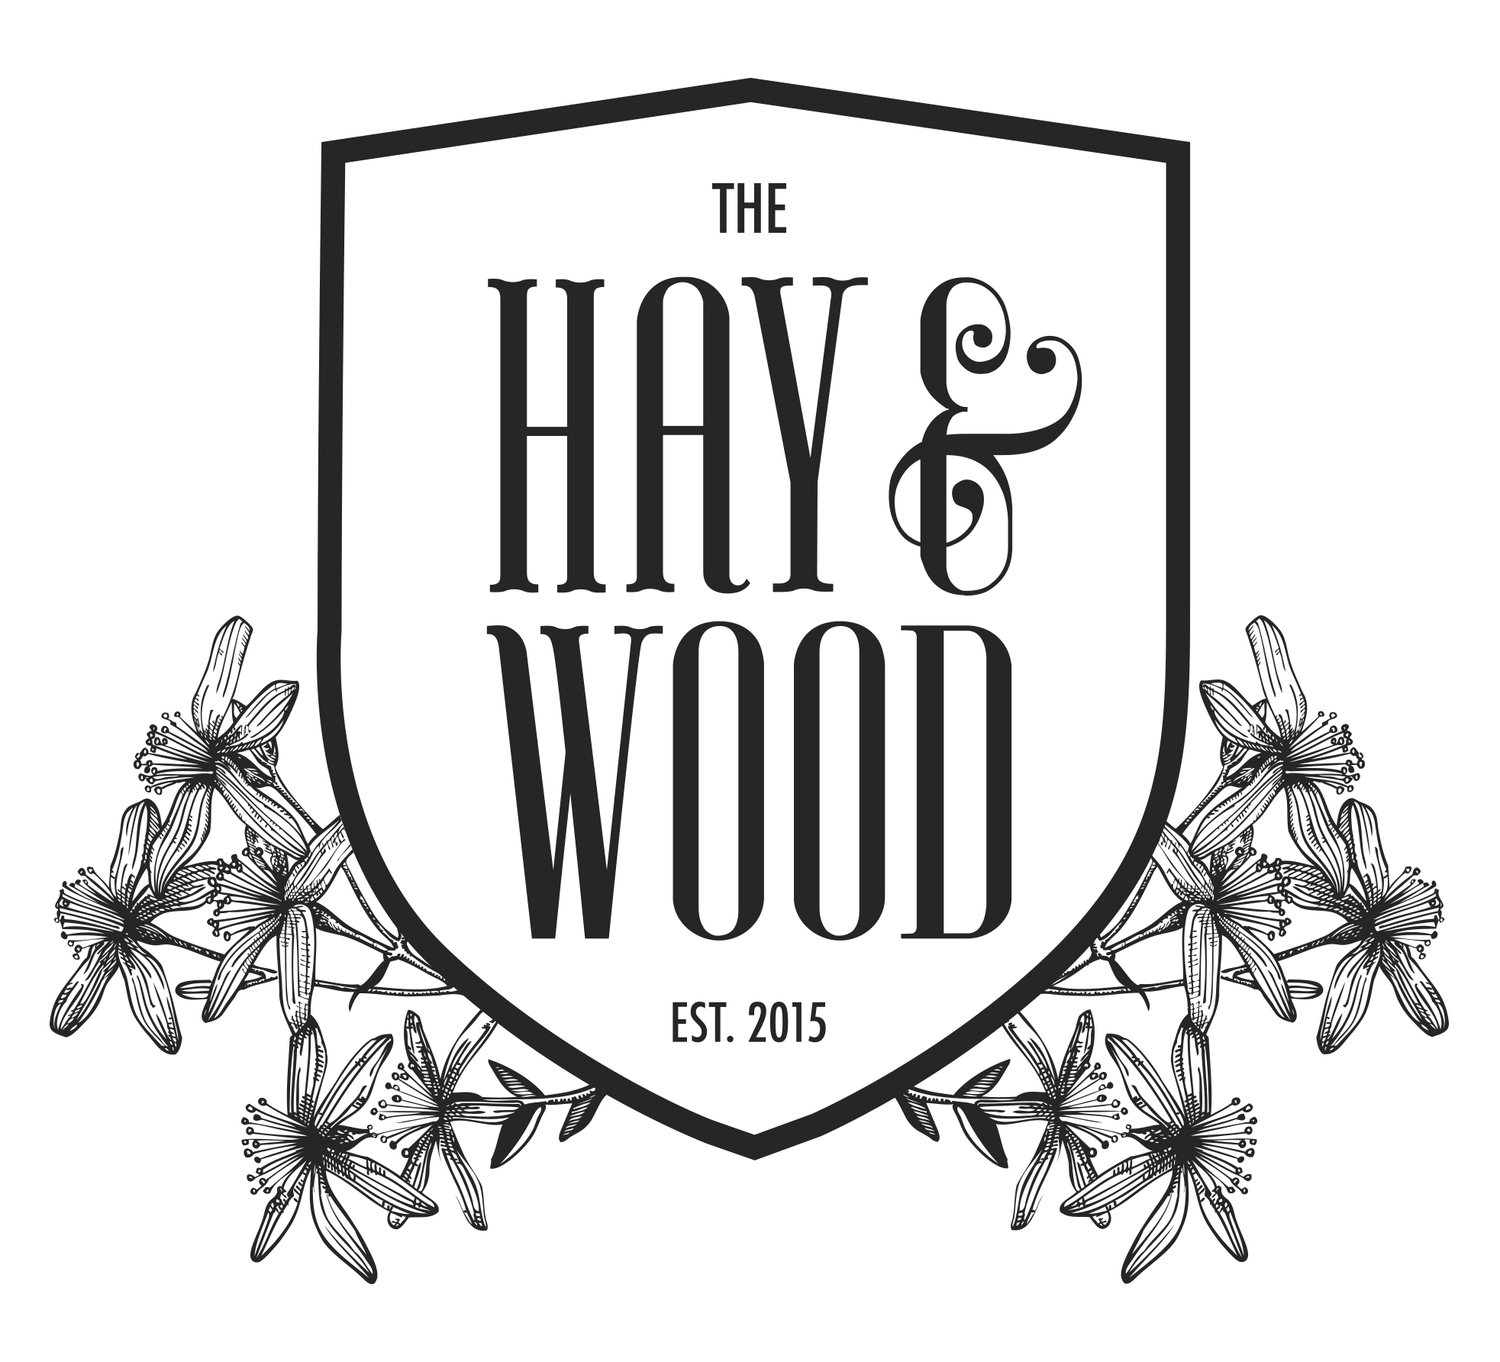 The Hay & Wood